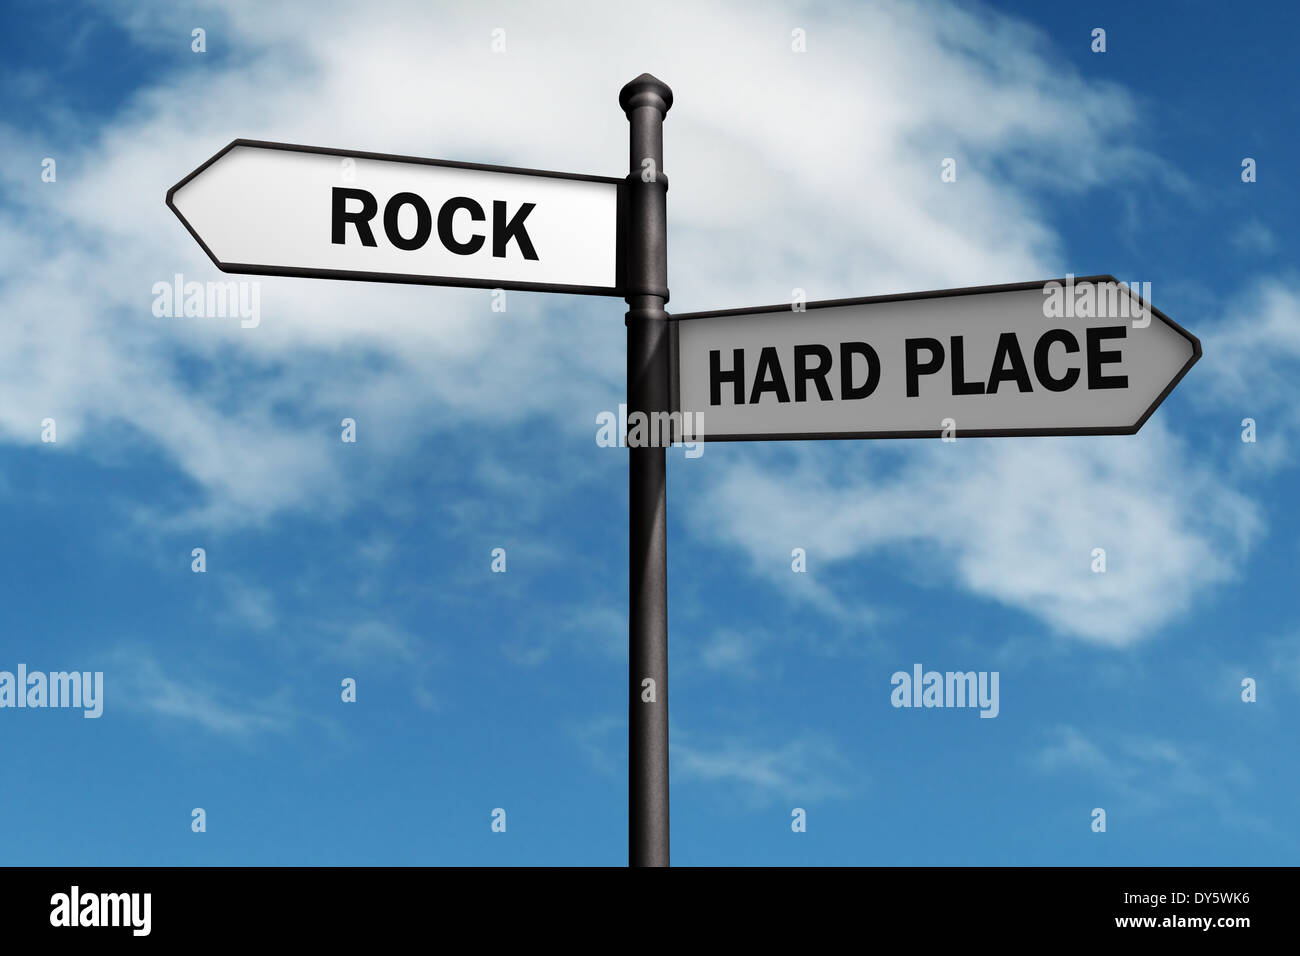 Stuck between a rock and a hard place - Stock Image